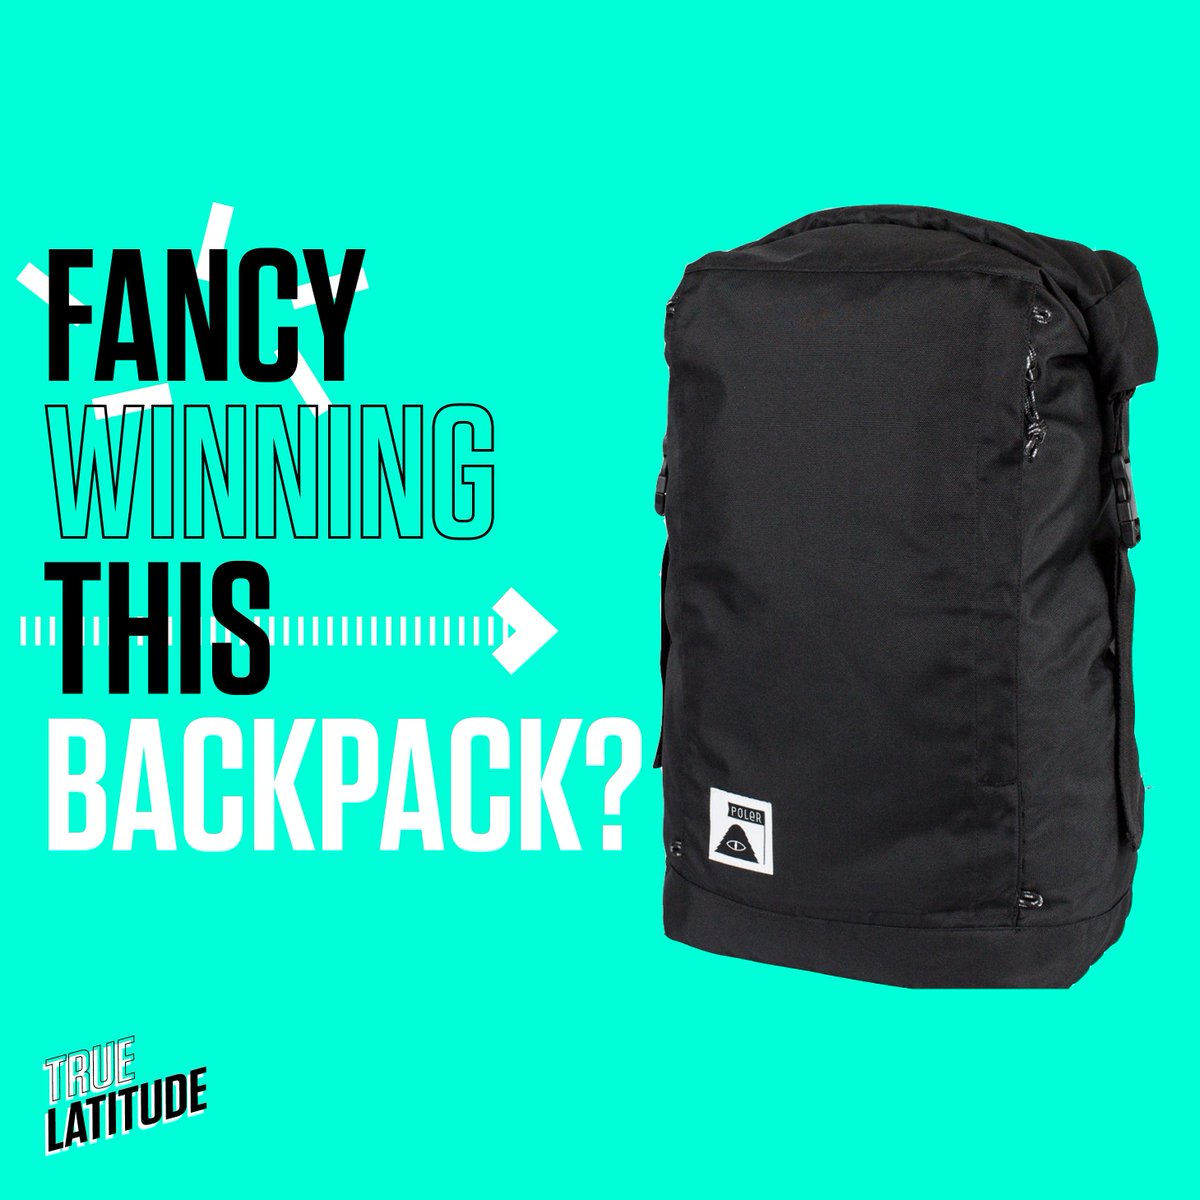 #COMPETITION time! Last chance to #WIN an awesome Polerstuff Rolltop Backpack on us! To enter simply #RETWEEET + FOLLOW us to enter. Draw will take place 01/05/18 Good Luck!! <br>http://pic.twitter.com/IOPyxgDmRp